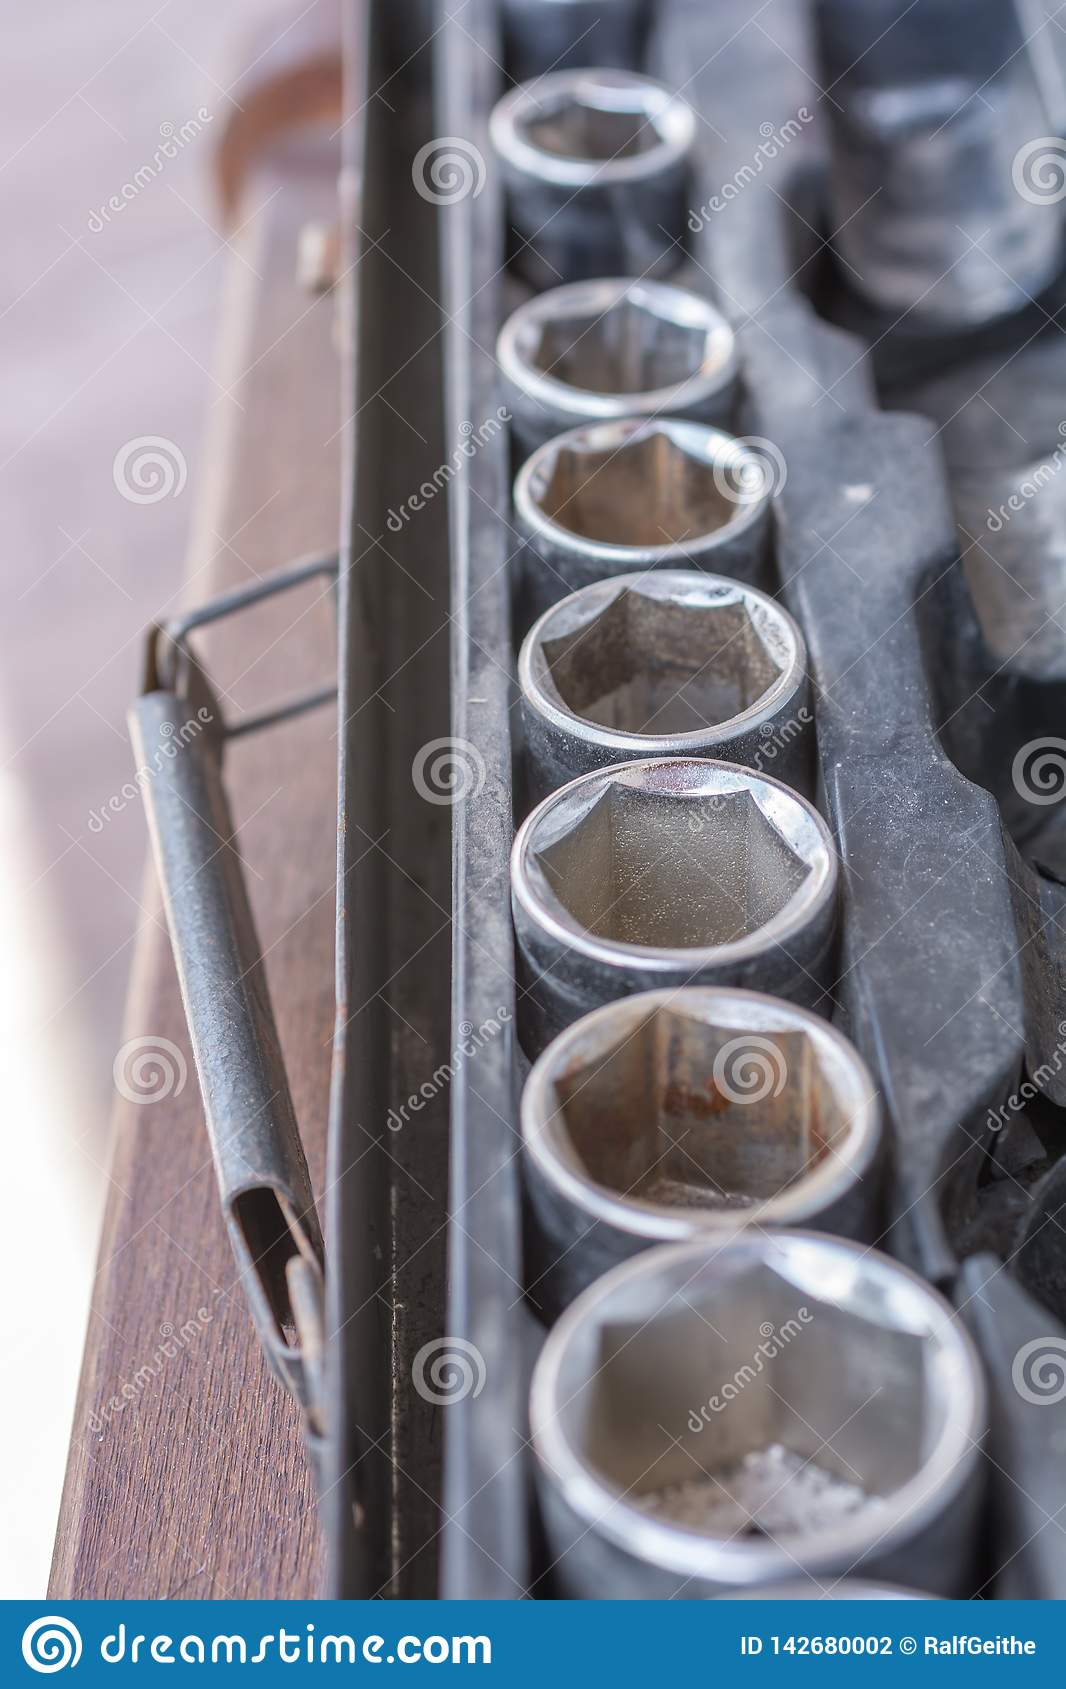 Assortment of nuts in an old socket wrench set